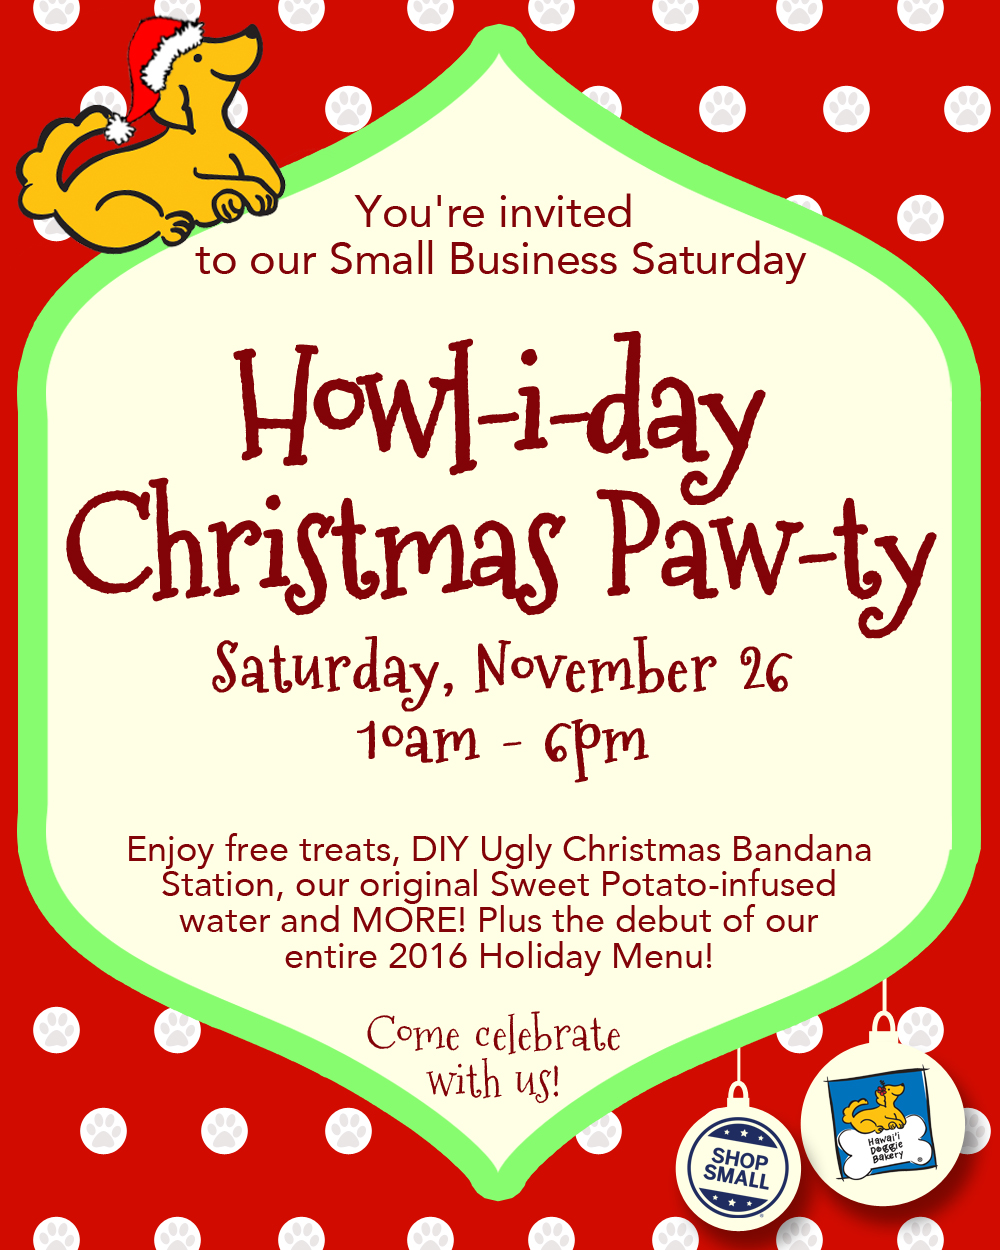 Nov 26: Howl-i-day Christmas Paw-ty: A Small Business Saturday ...